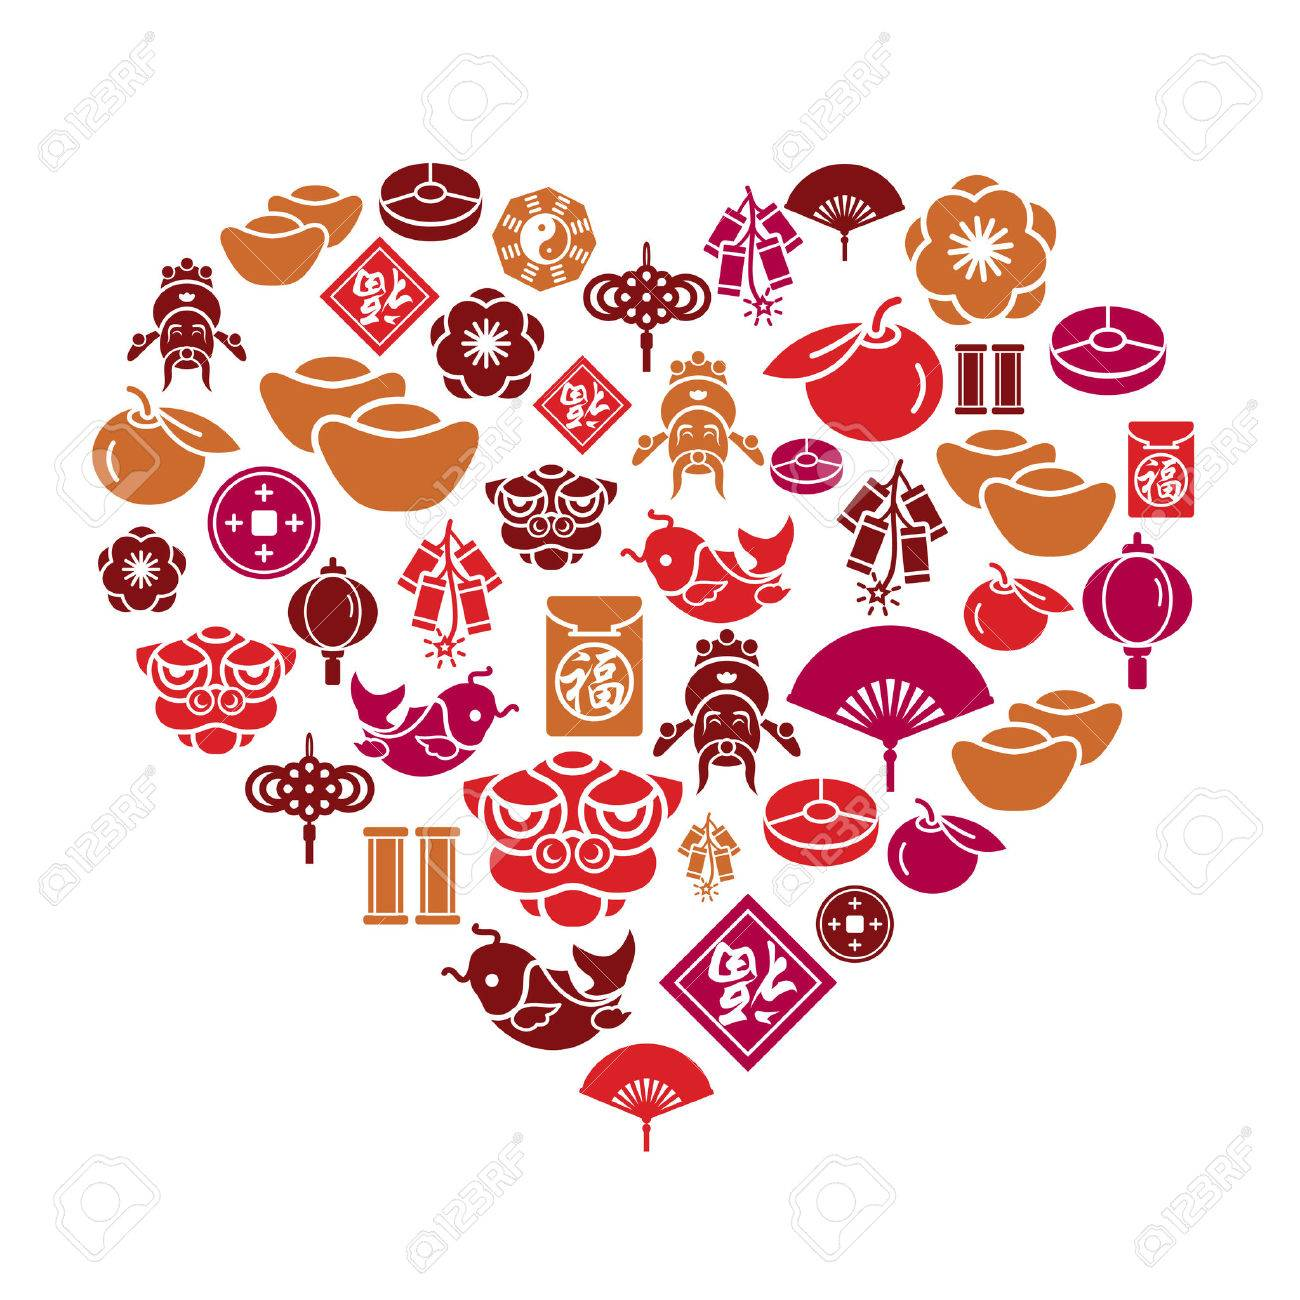 Chinese new year icons in heart shape royalty free cliparts chinese new year icons in heart shape stock vector 30441751 buycottarizona